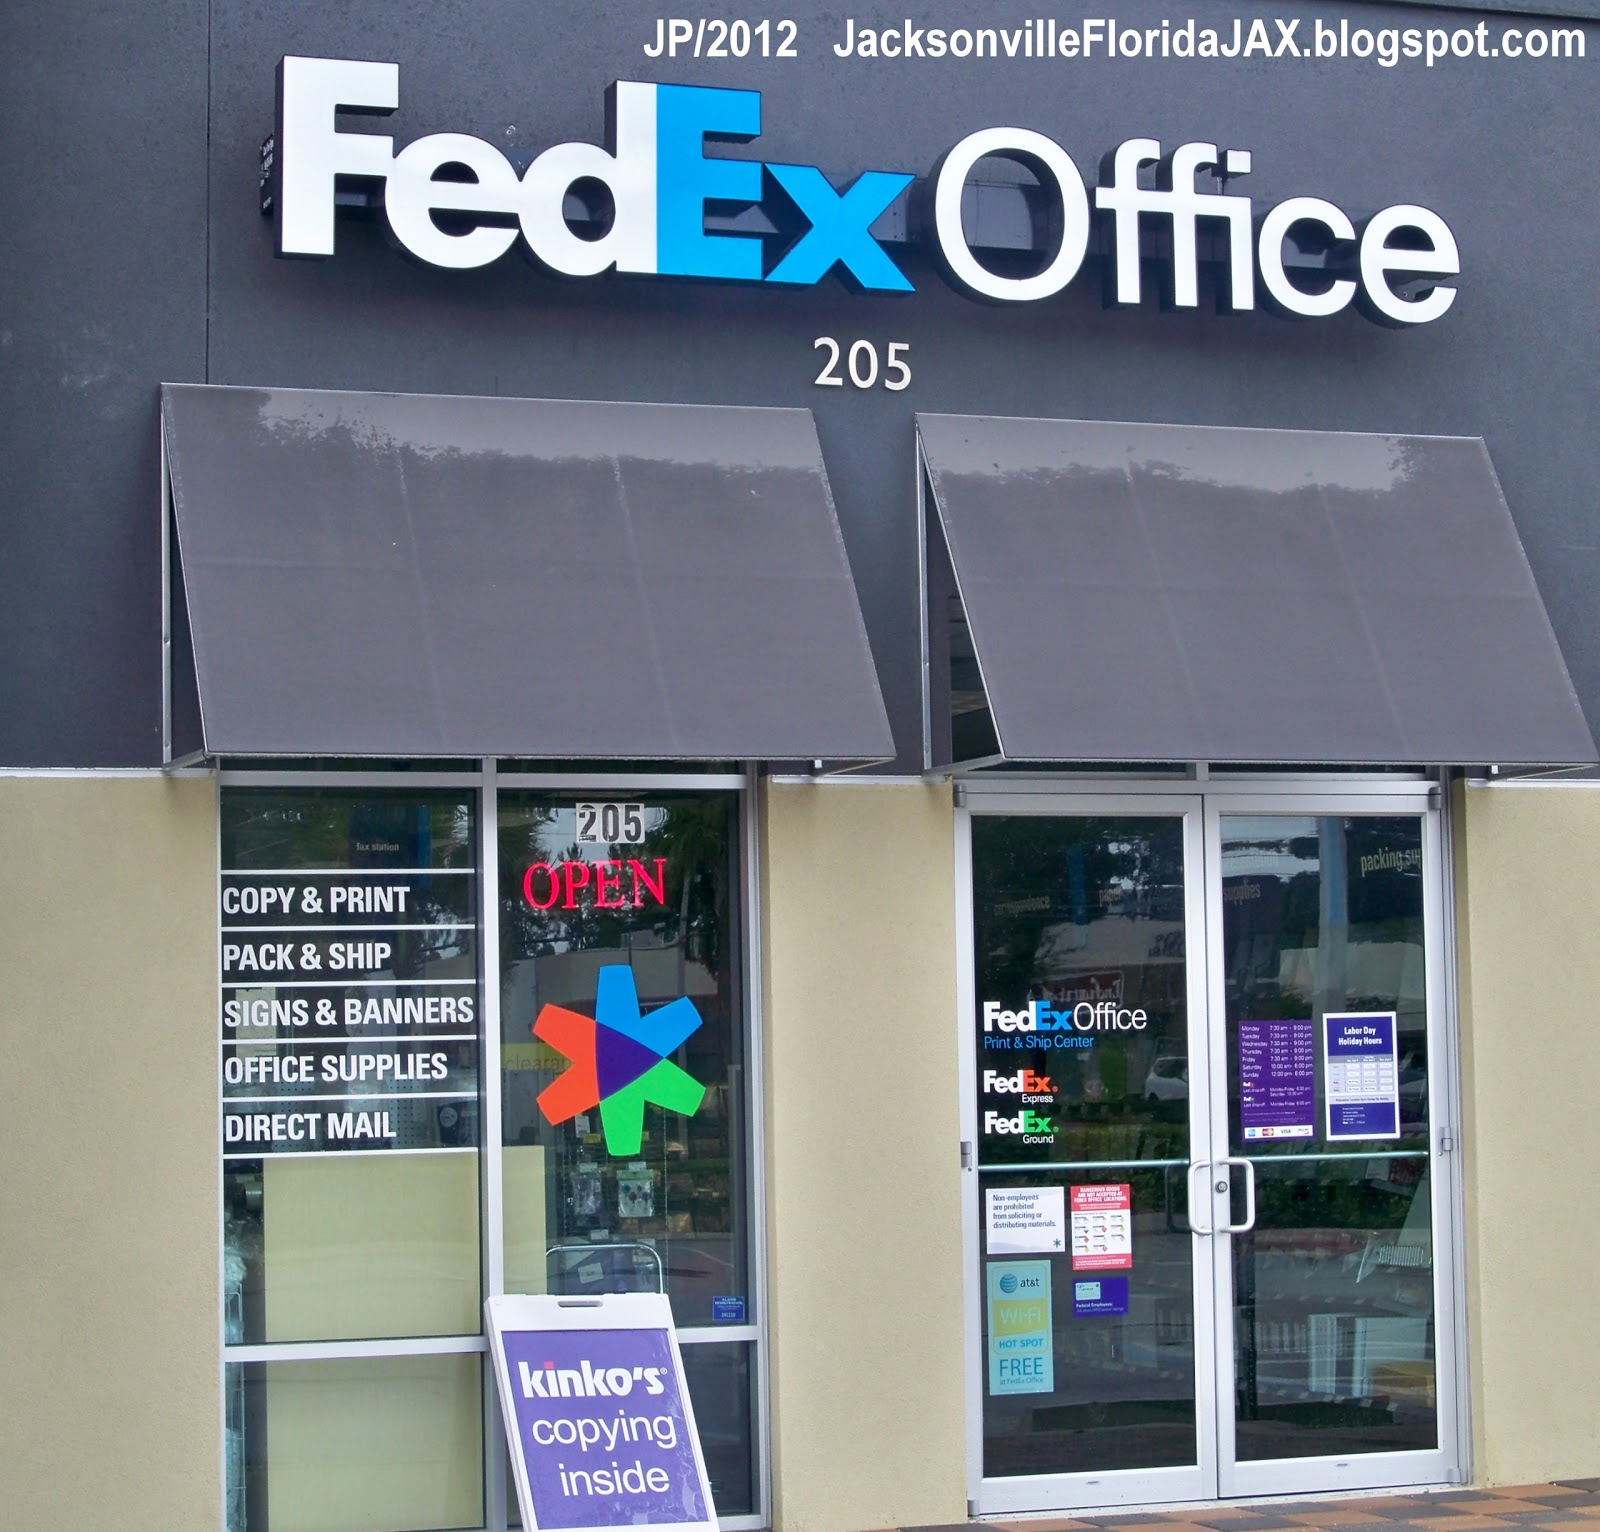 Cost of color printing at fedex - Co Color Printing Fedex Fedex Office Print